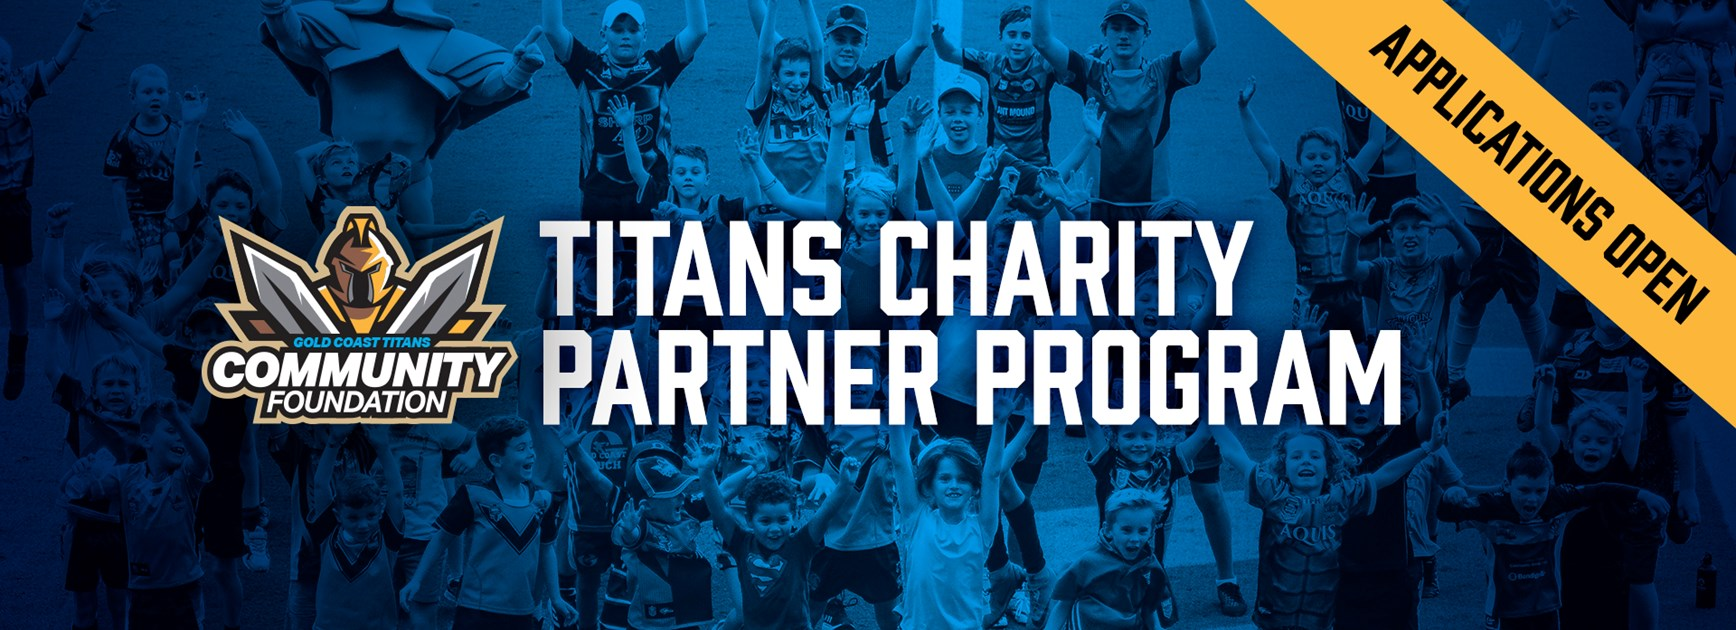 2020 Titans Charity Partner Program